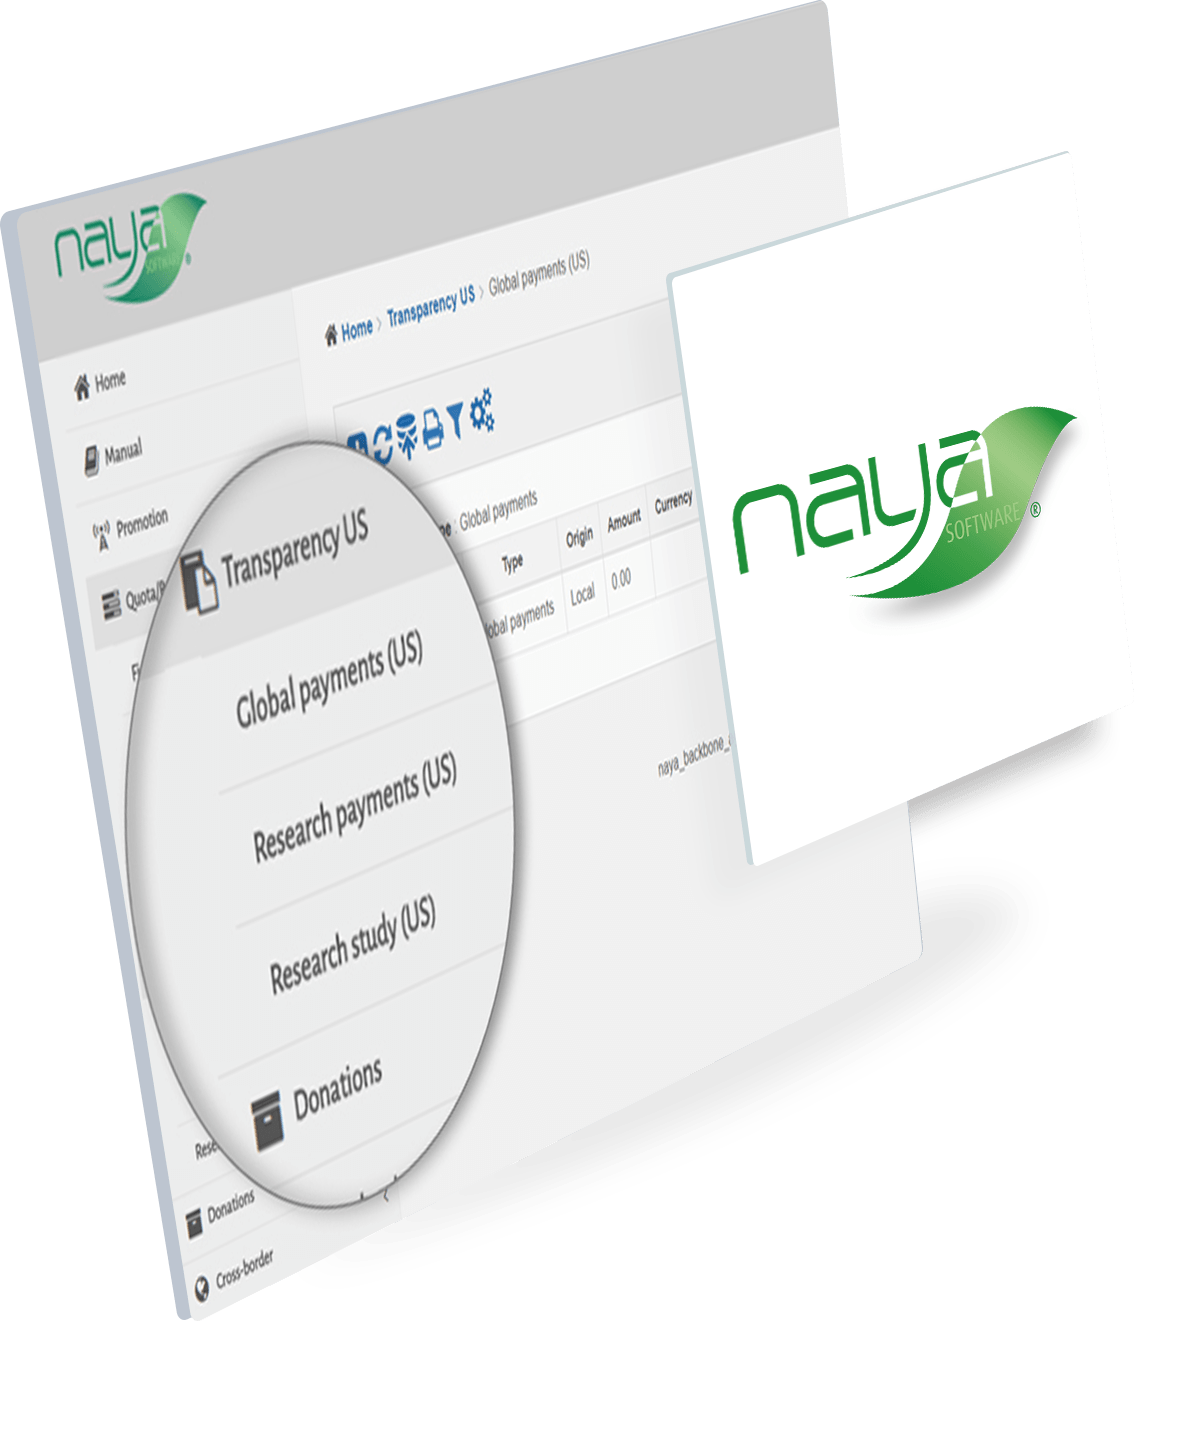 A screenshot of Naya Interface for transparency management